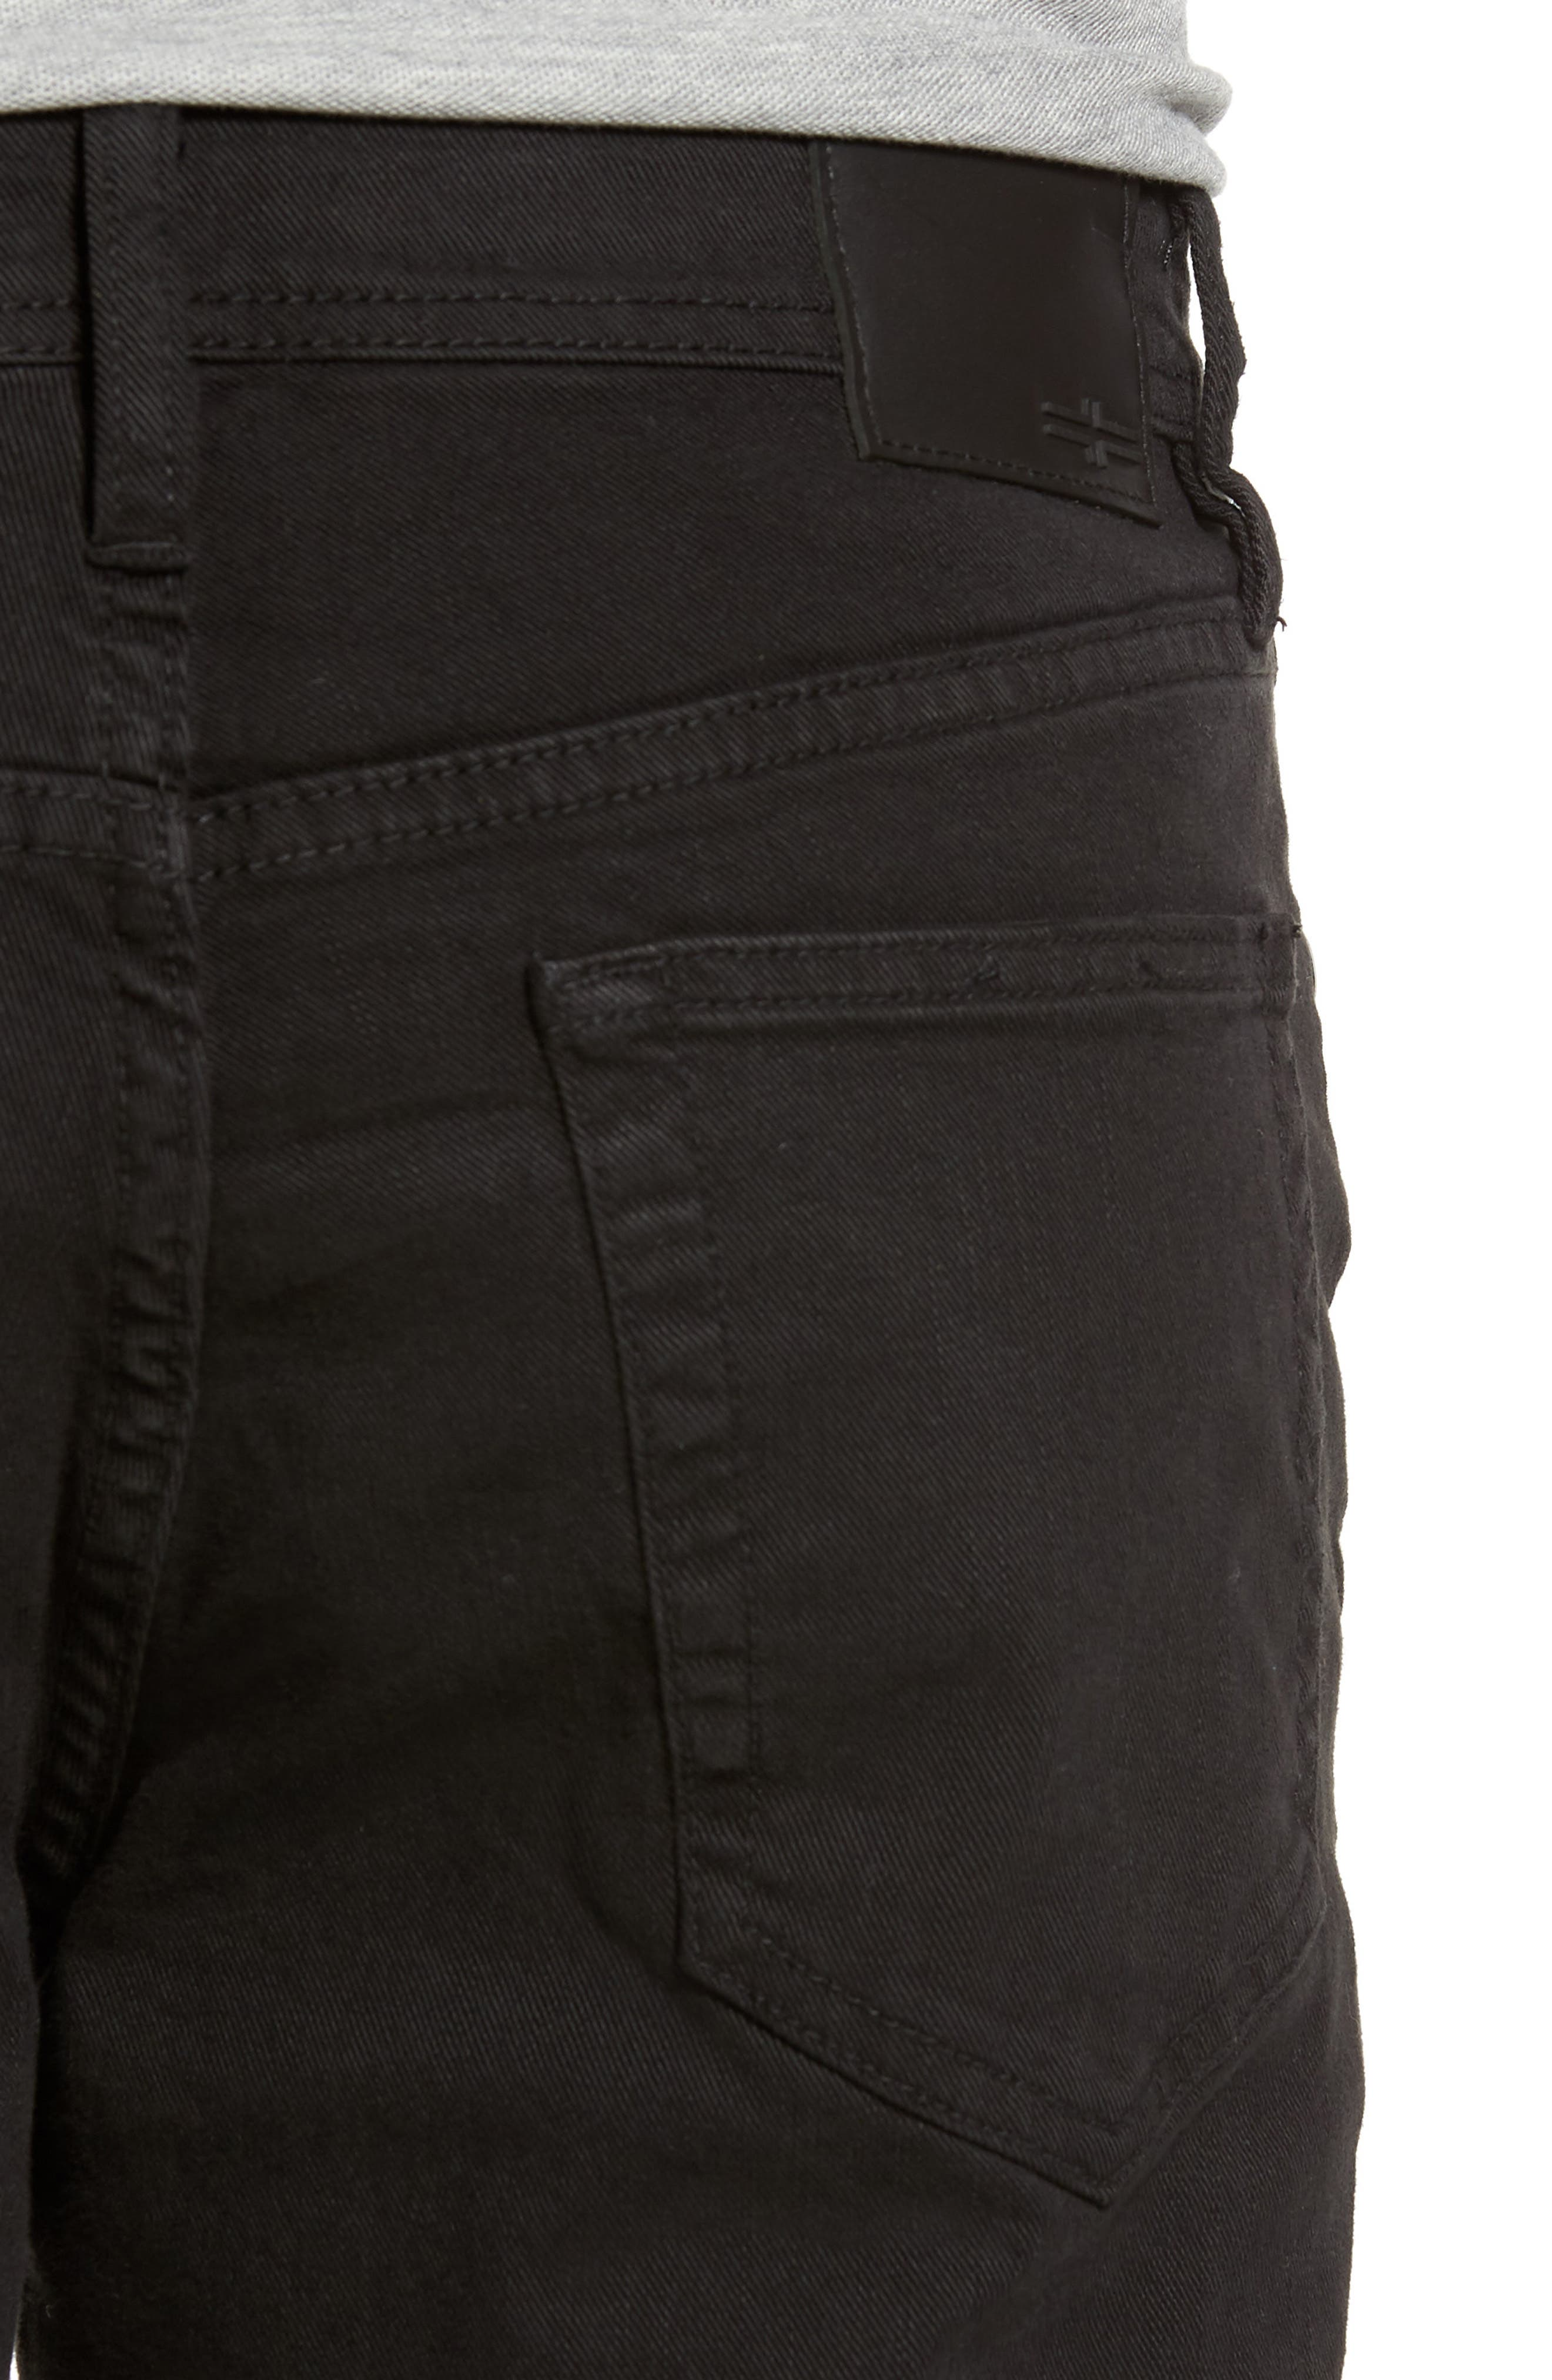 Jeans Co. Regent Relaxed Fit Jeans,                             Alternate thumbnail 4, color,                             BLACK RINSE